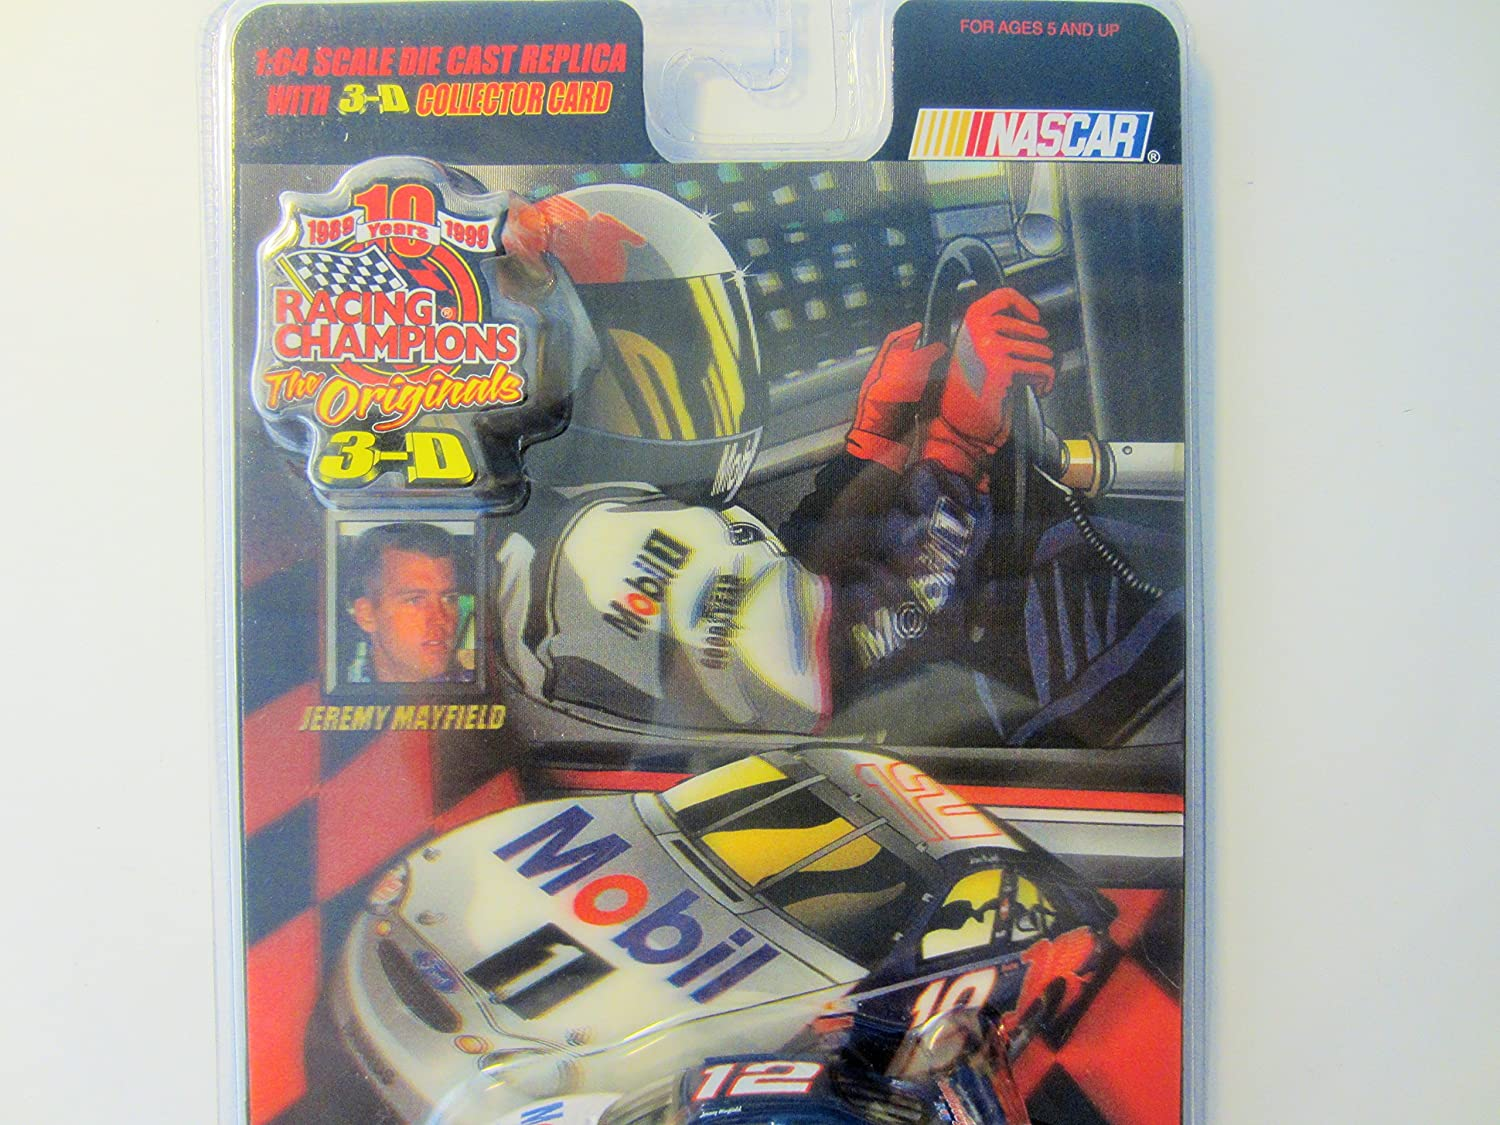 1999 The Originals 3-D Racing Champions Jeremy Mayfield NASCAR Inc 91190 No 12 Mobil 1 Ford Taurus